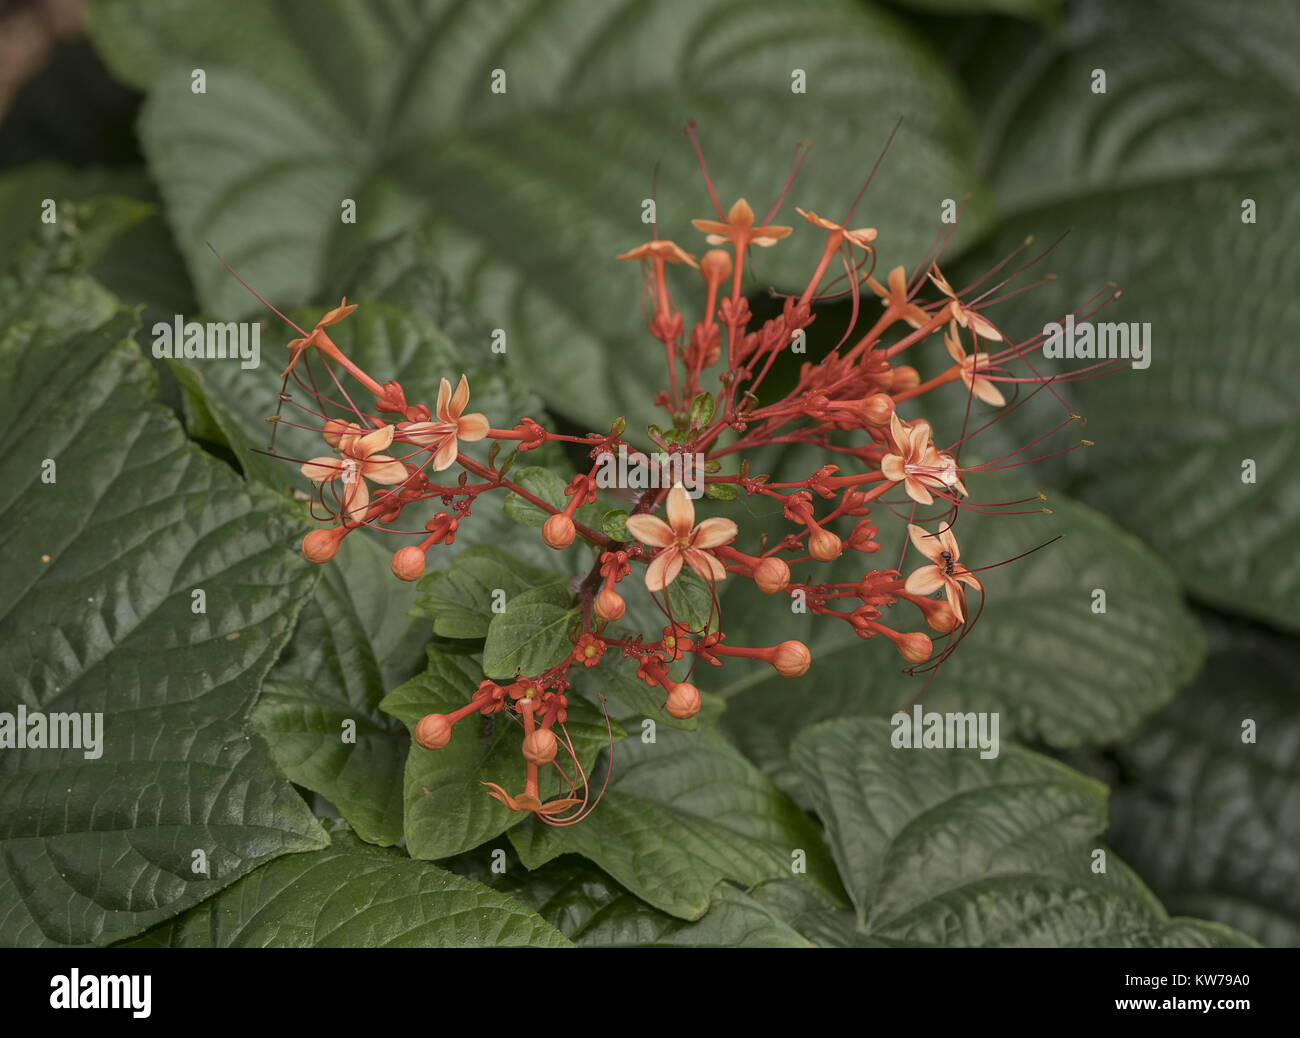 Javanese Glorybower, Clerodendrum speciosissimum, Indonesia. Widely planted and naturalised. - Stock Image